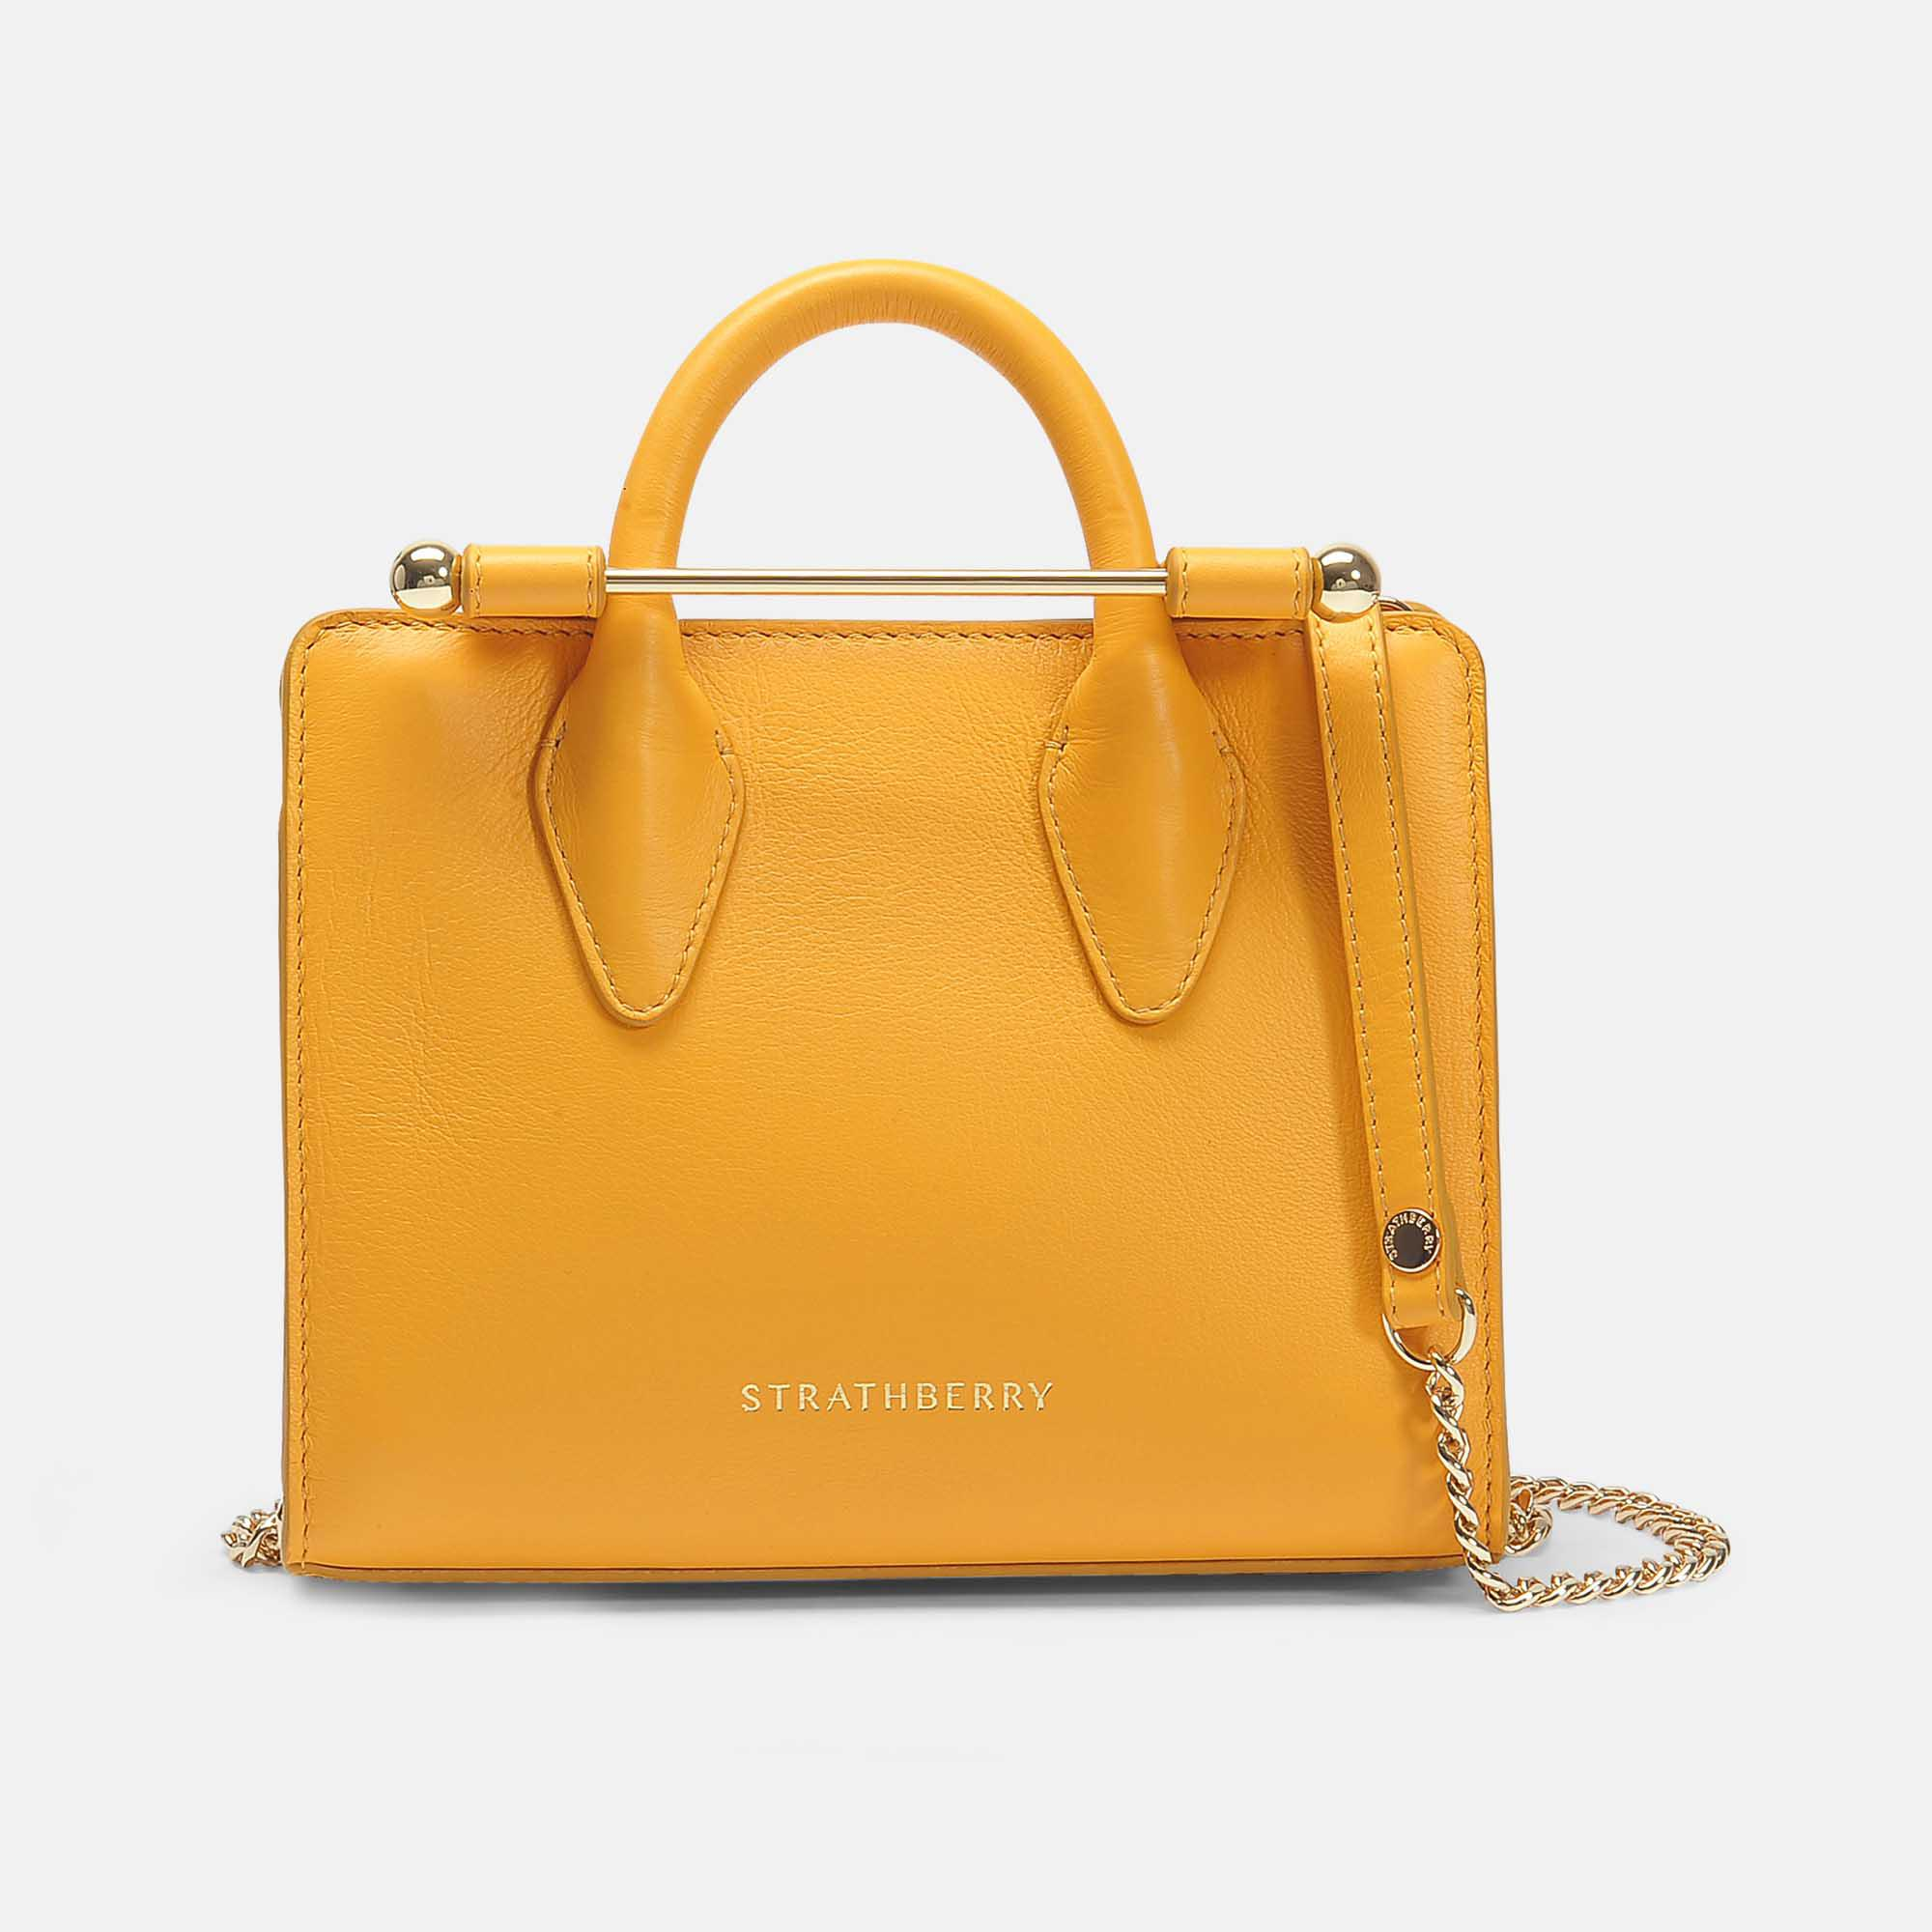 7c3ba820e70c Strathberry - The Nano Tote In Yellow Calfskin - Lyst. View fullscreen